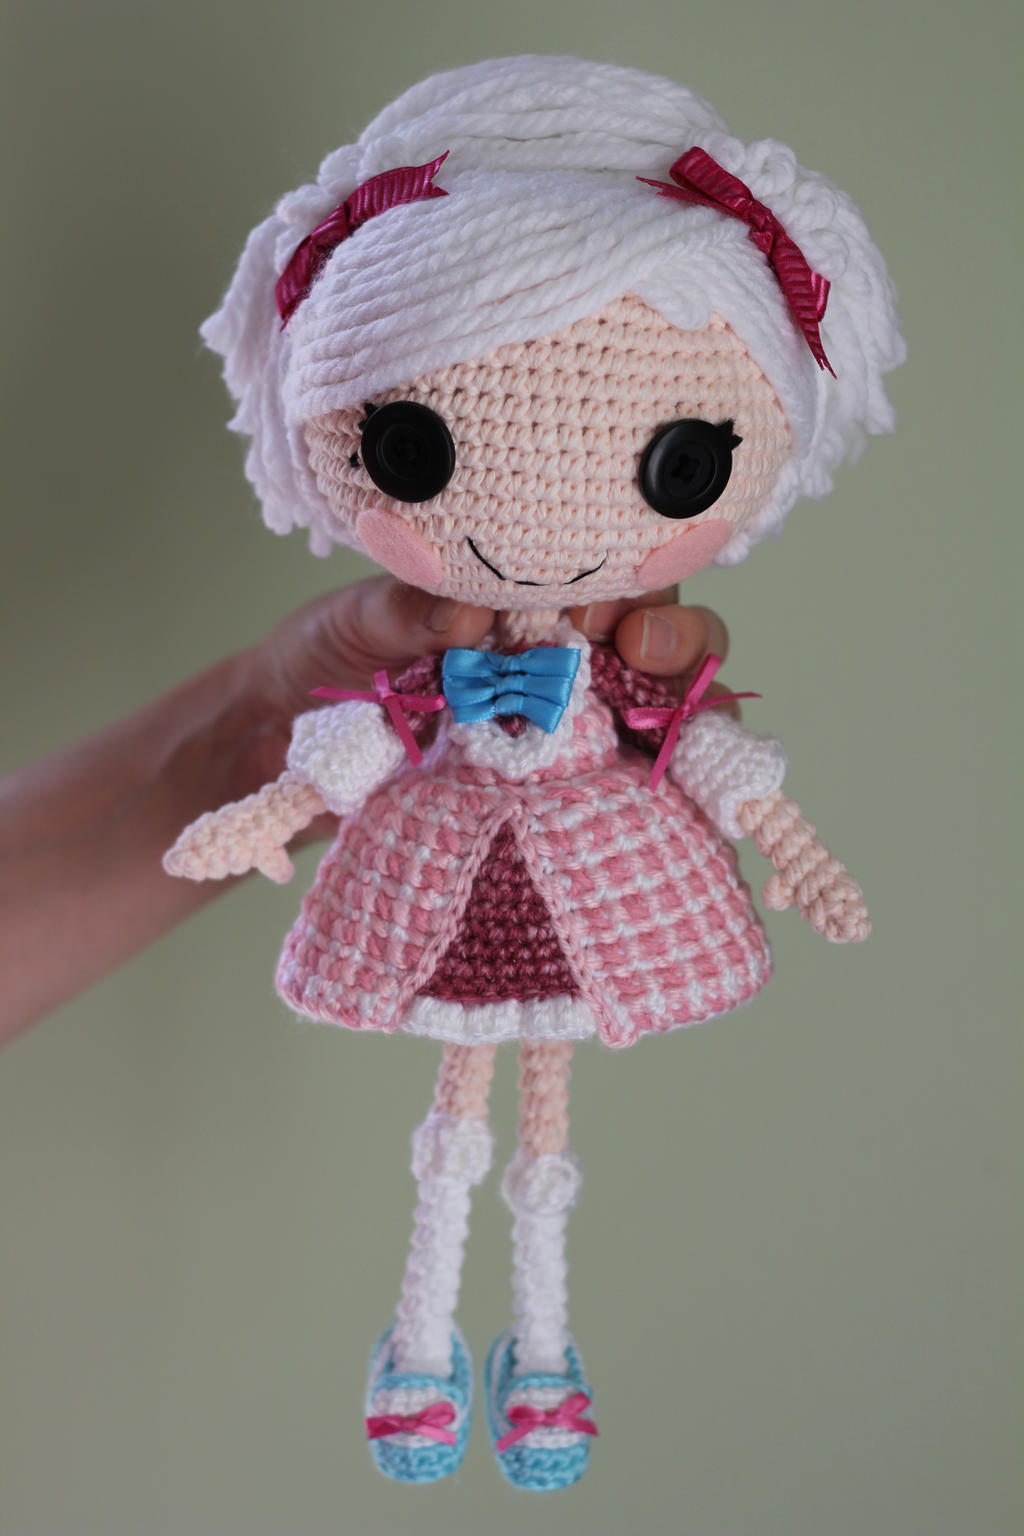 Amigurumi Doll How To : Lalaloopsy suzette la sweet crochet amigurumi doll by